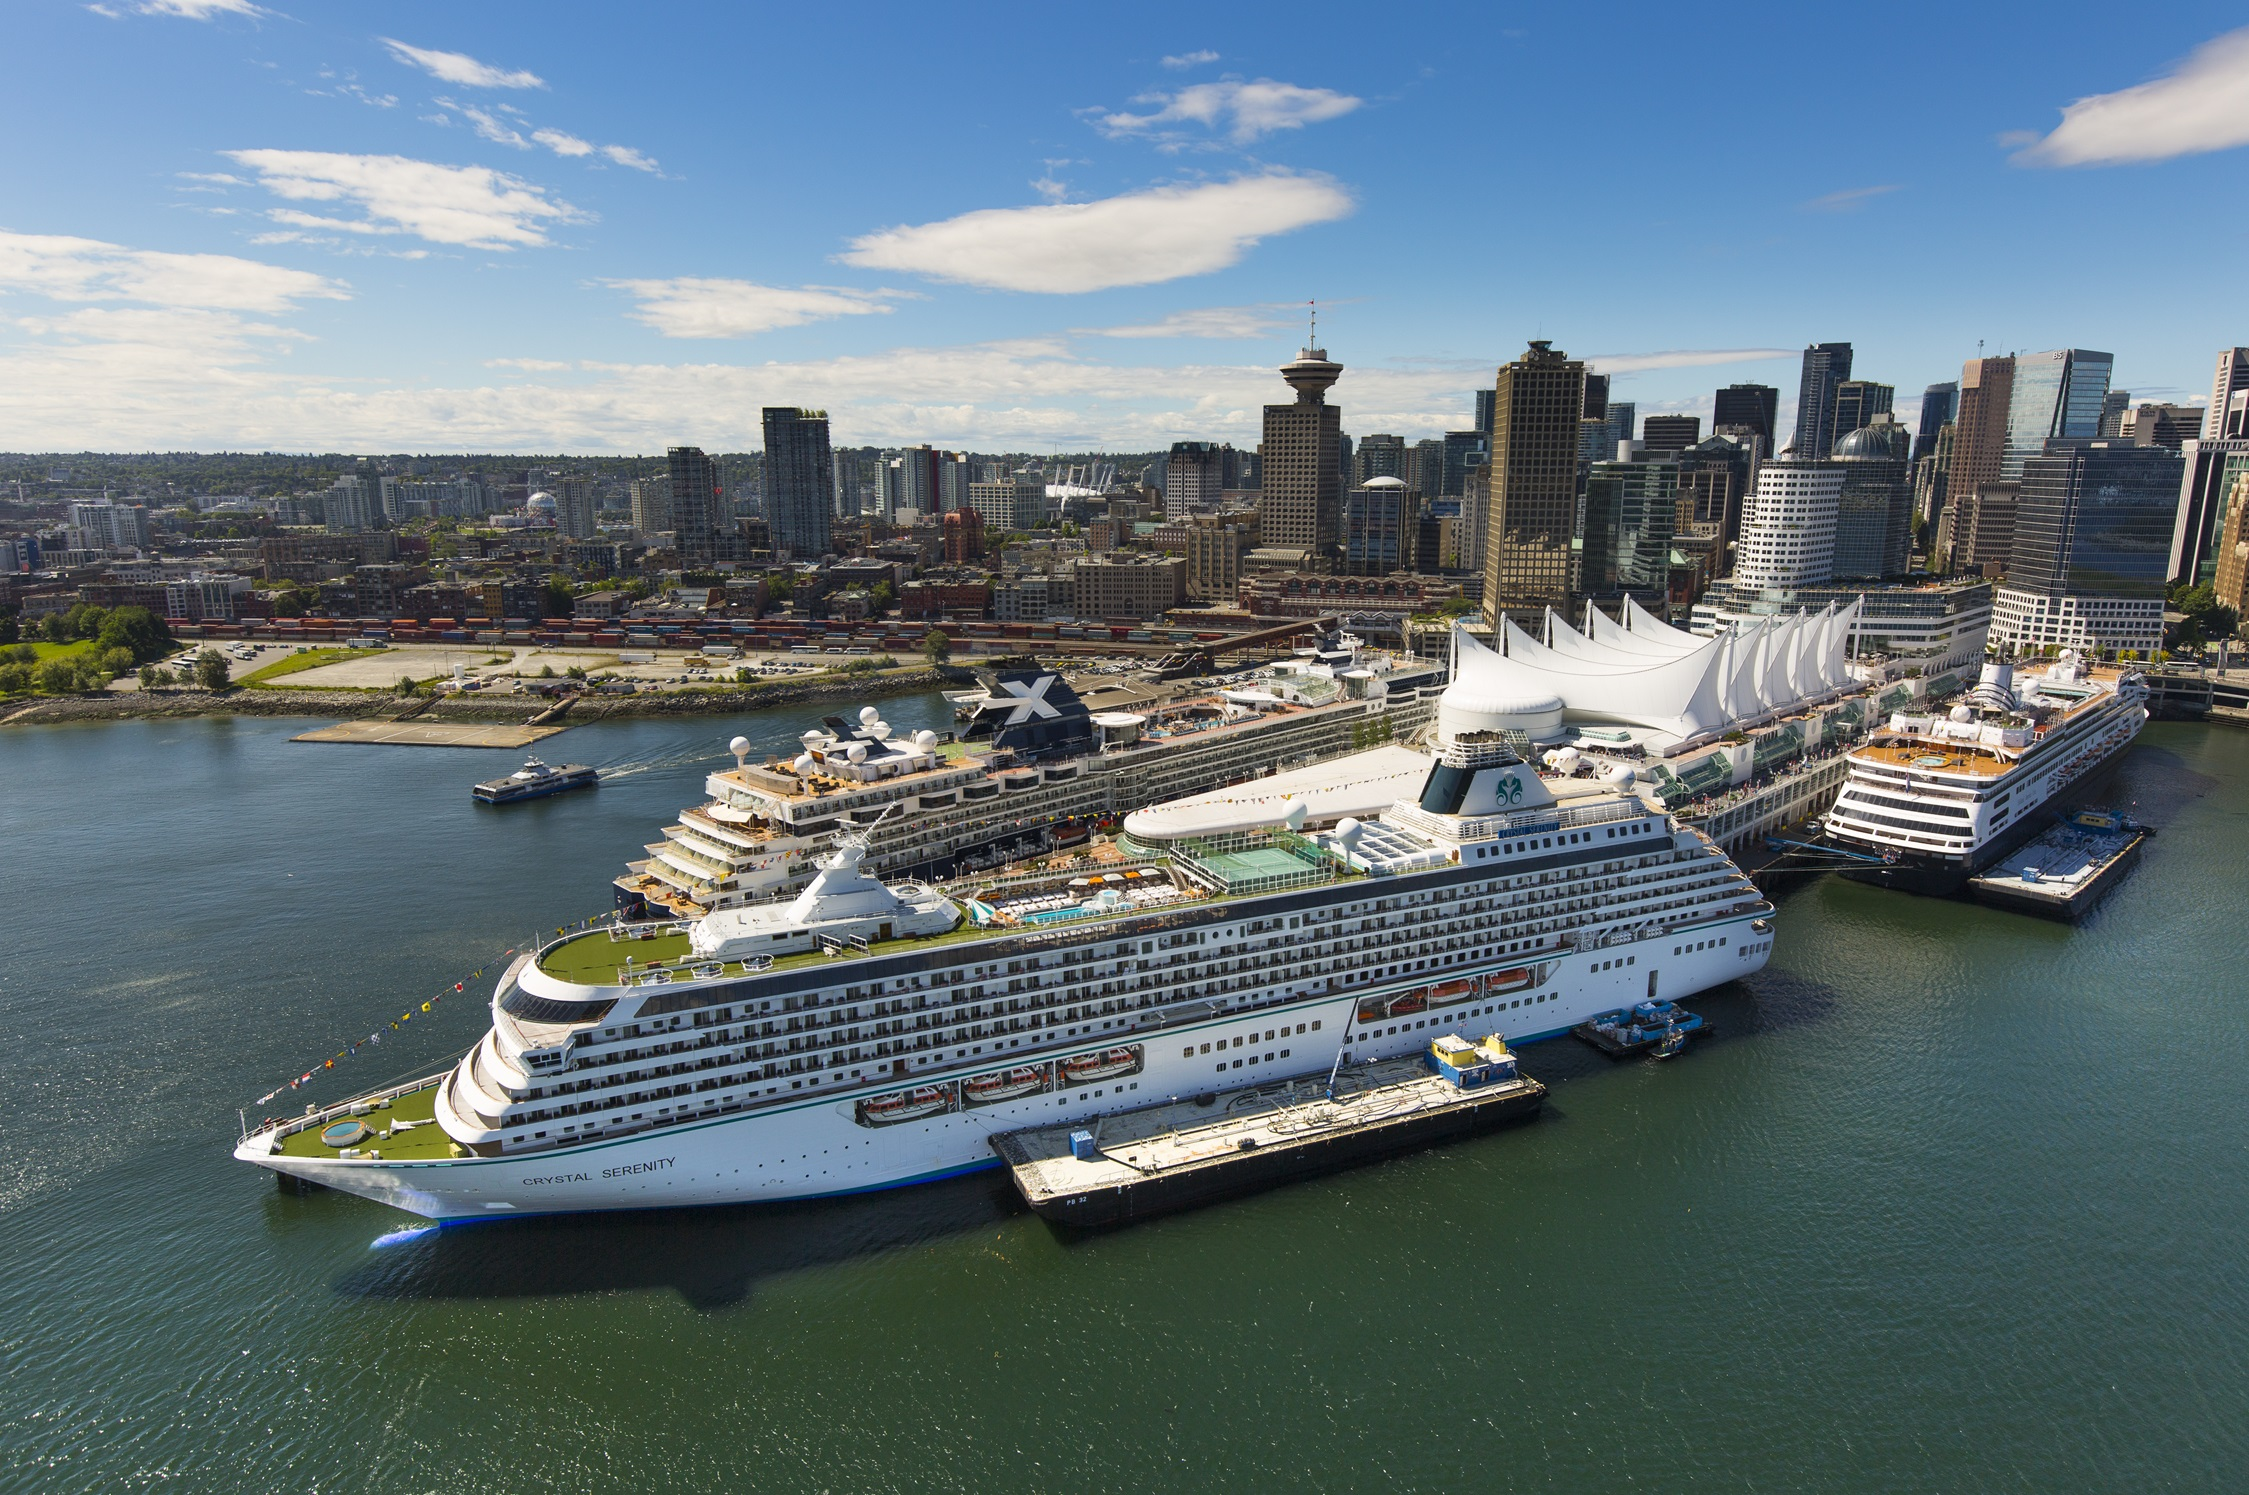 Canada will not permit cruise ships to dock at their ports until July 1